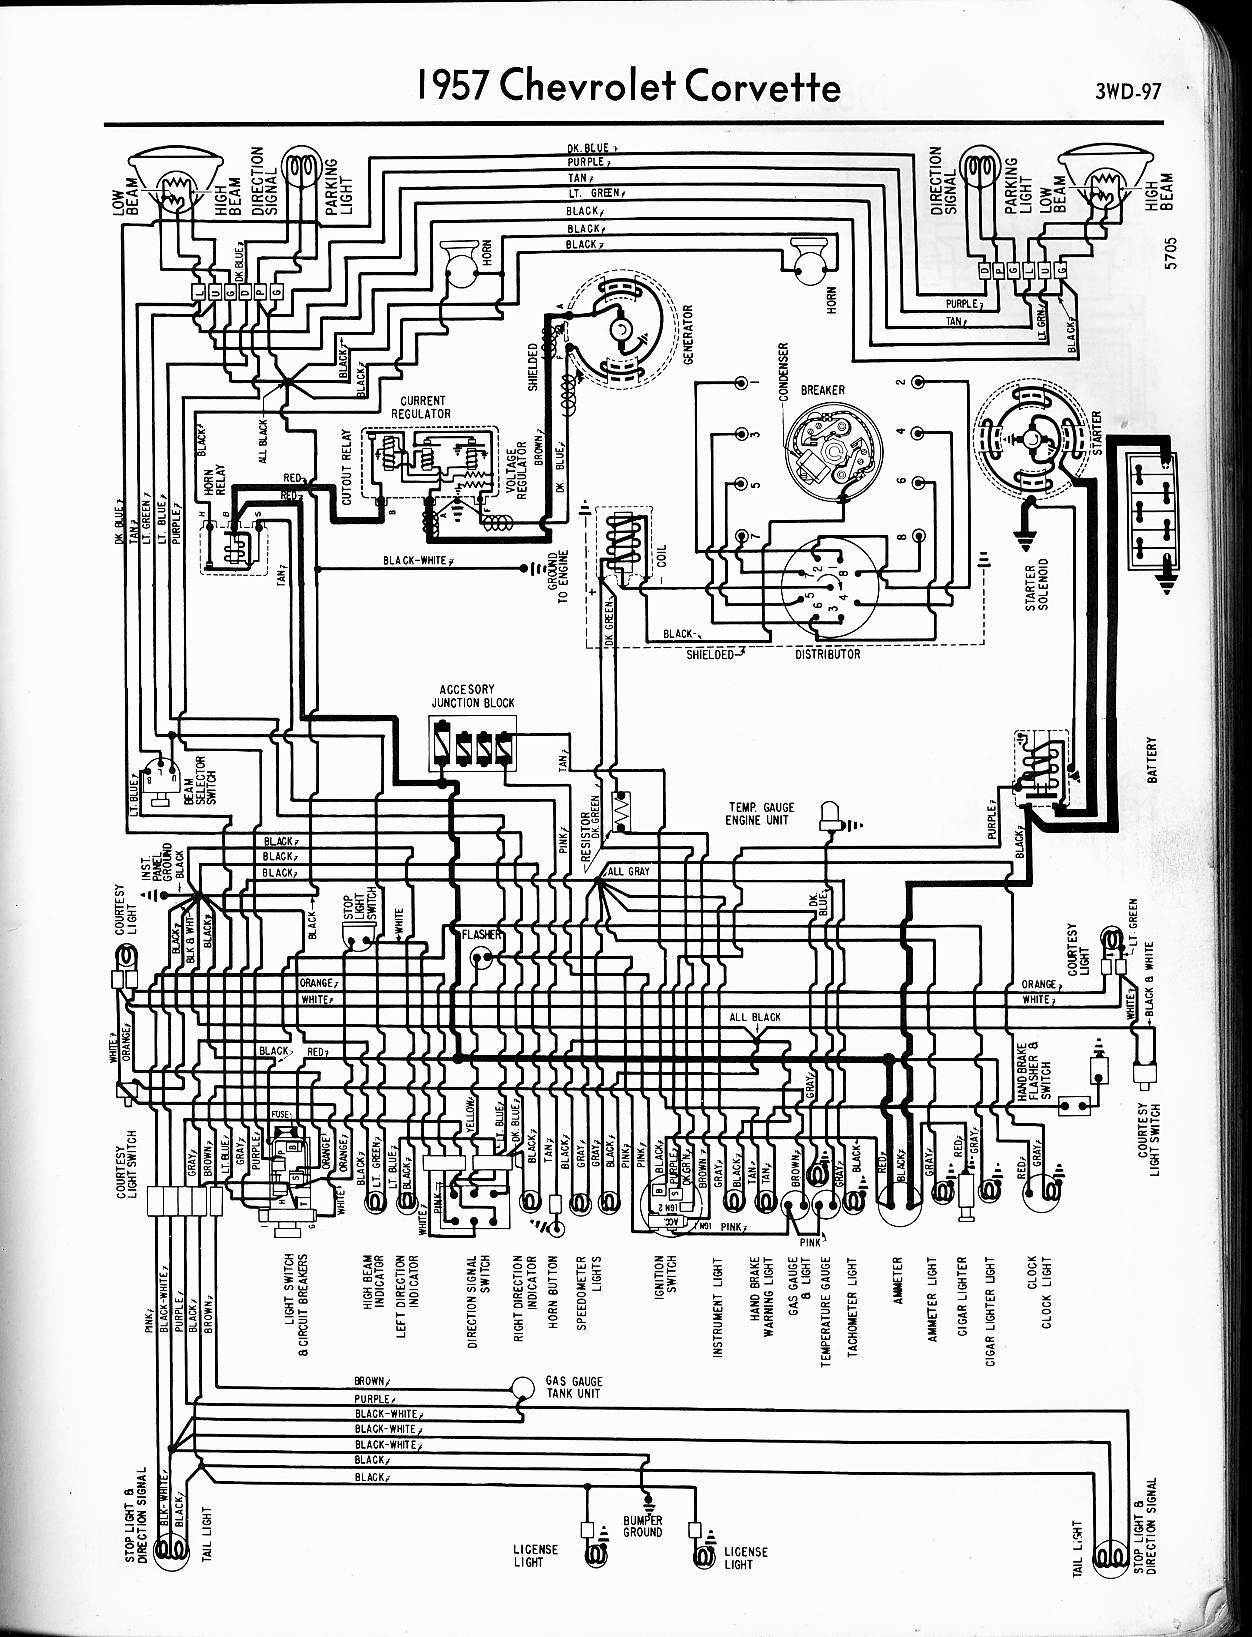 1955 chevy fuse box diagram catalogue of schemas fuse panel diaghram trifive 1955 chevy